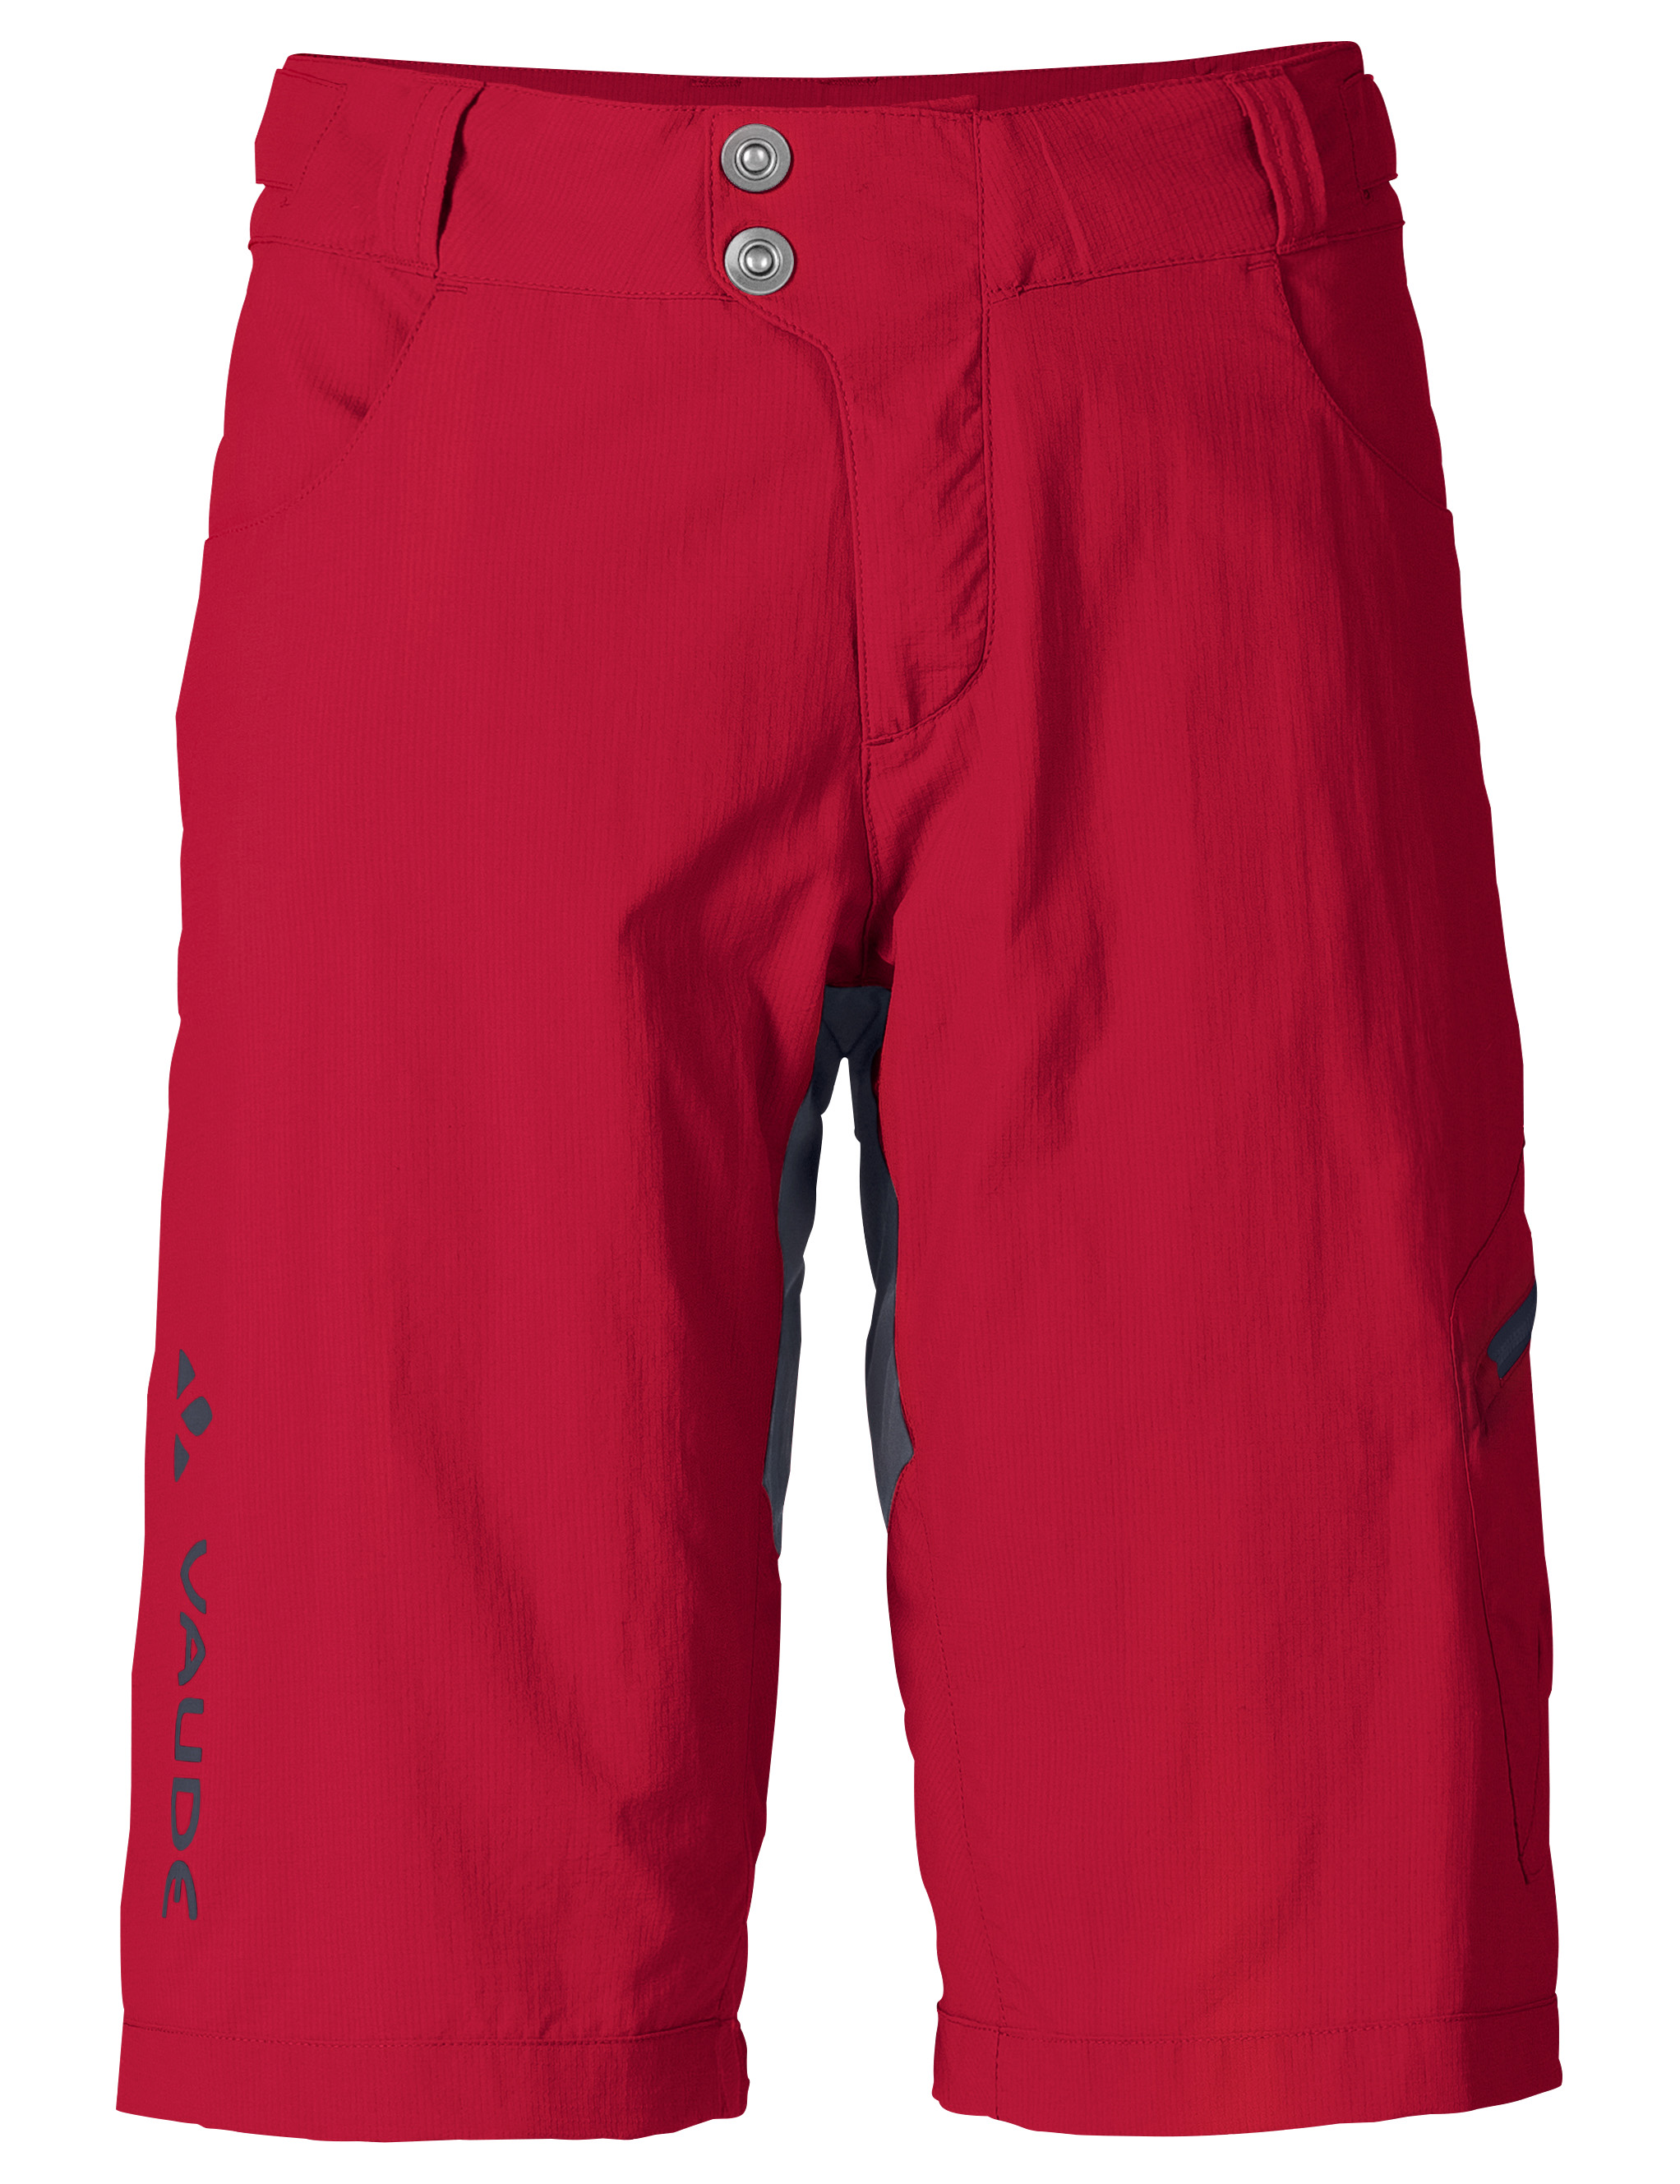 VAUDE Women´s Brand Shorts indian red Größe 34 - schneider-sports